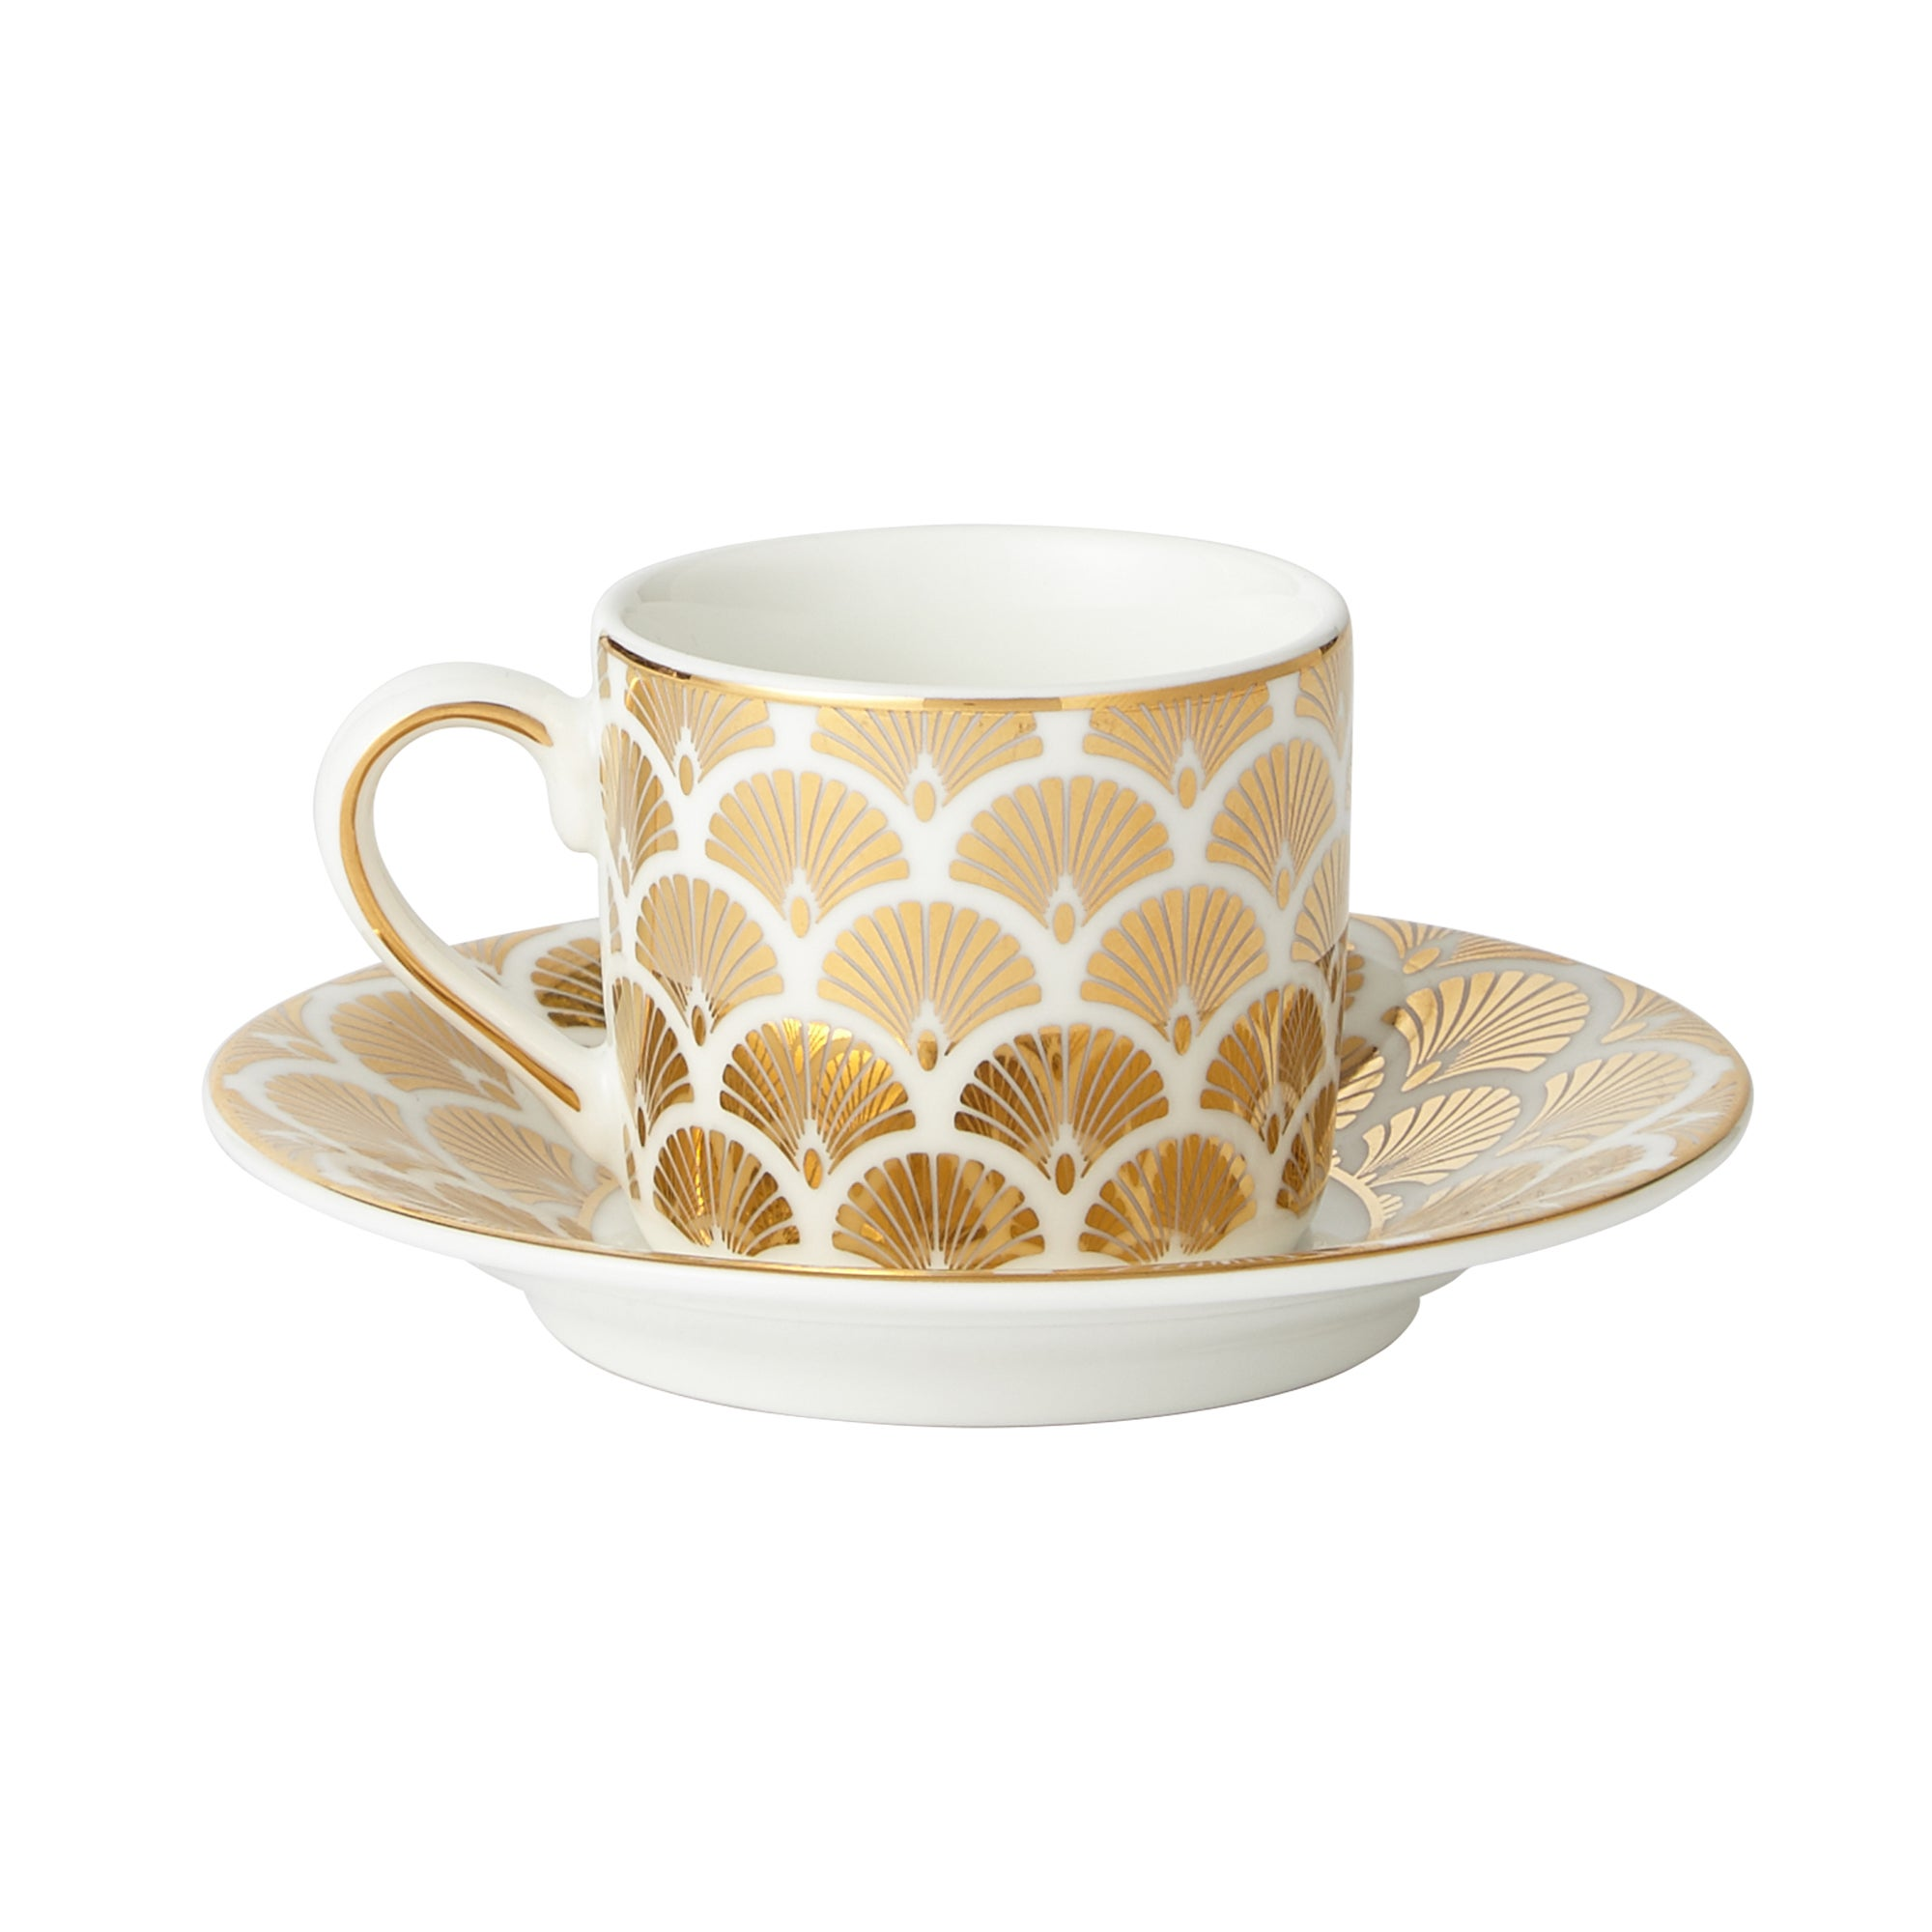 Image of 5A Fifth Avenue Bergen Gold Pack of 2 Espresso Cup and Saucer Gold